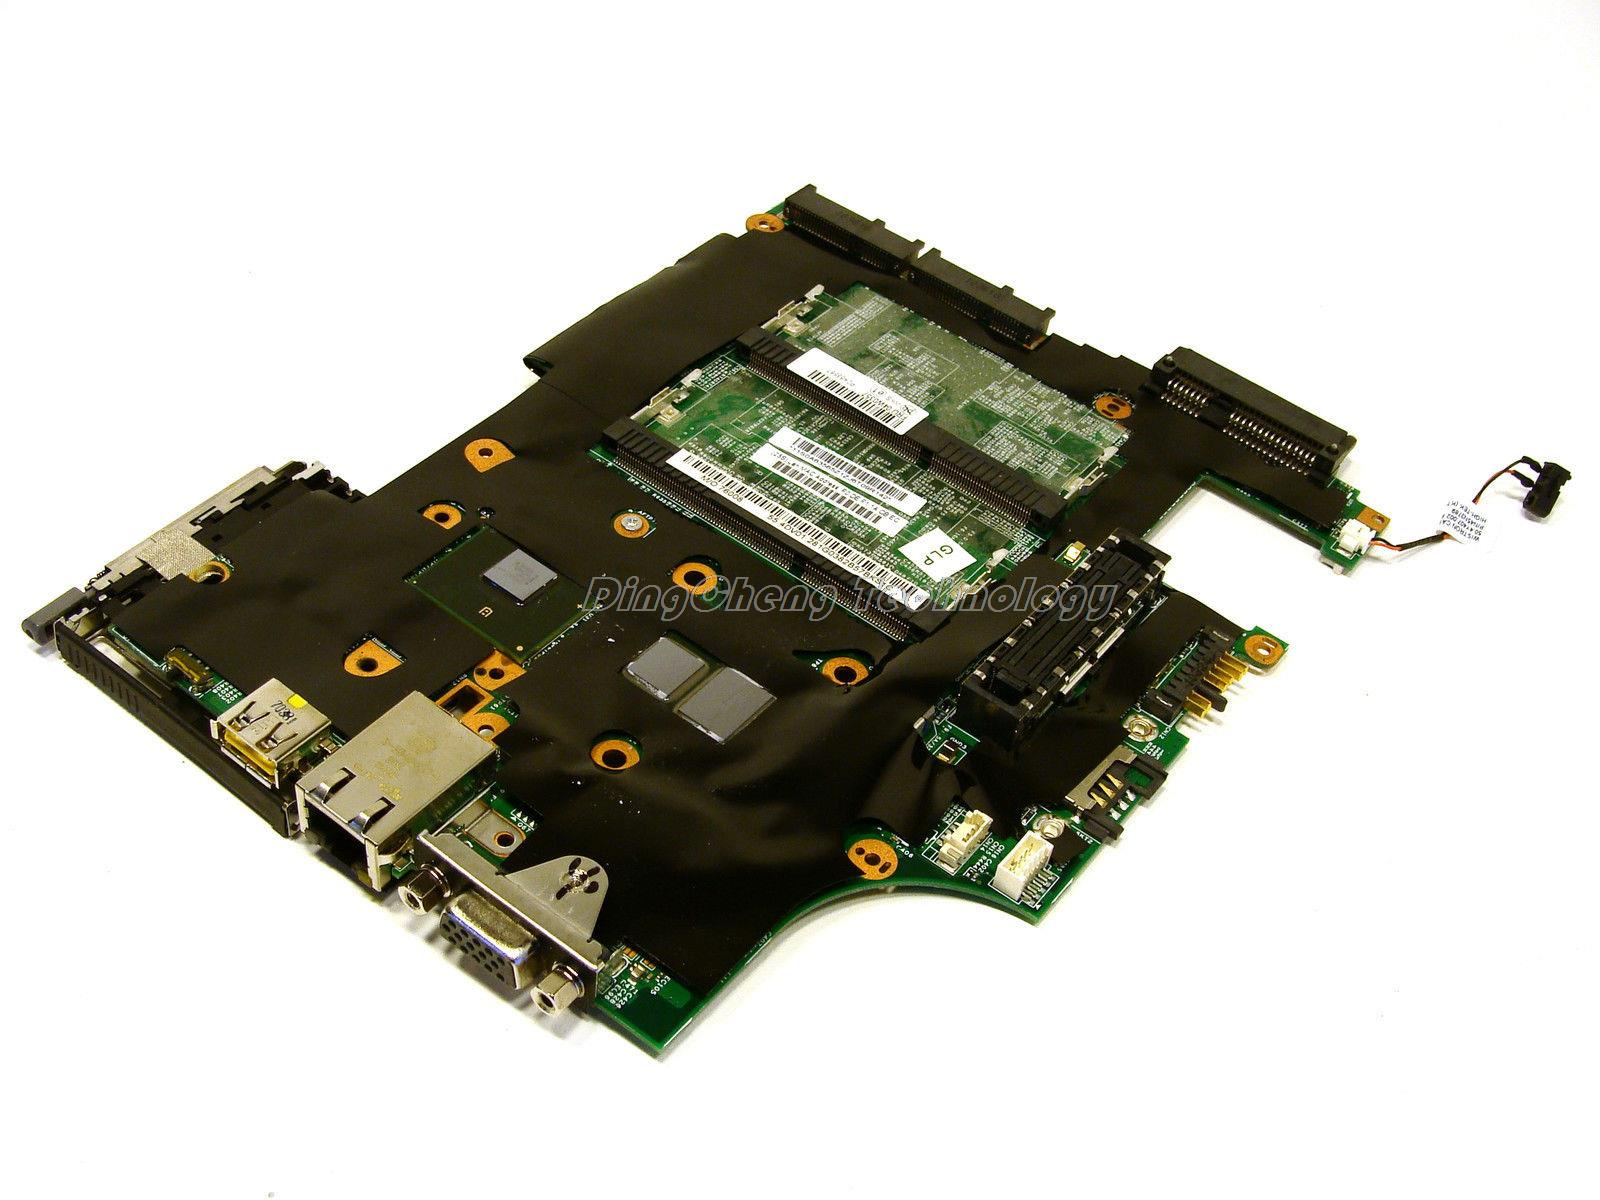 HOLYTIME laptop Motherboard for Lenovo IBM thinkpad X201 63Y2082 with i7-620LM CPU  integrated graphics card 100% testedHOLYTIME laptop Motherboard for Lenovo IBM thinkpad X201 63Y2082 with i7-620LM CPU  integrated graphics card 100% tested